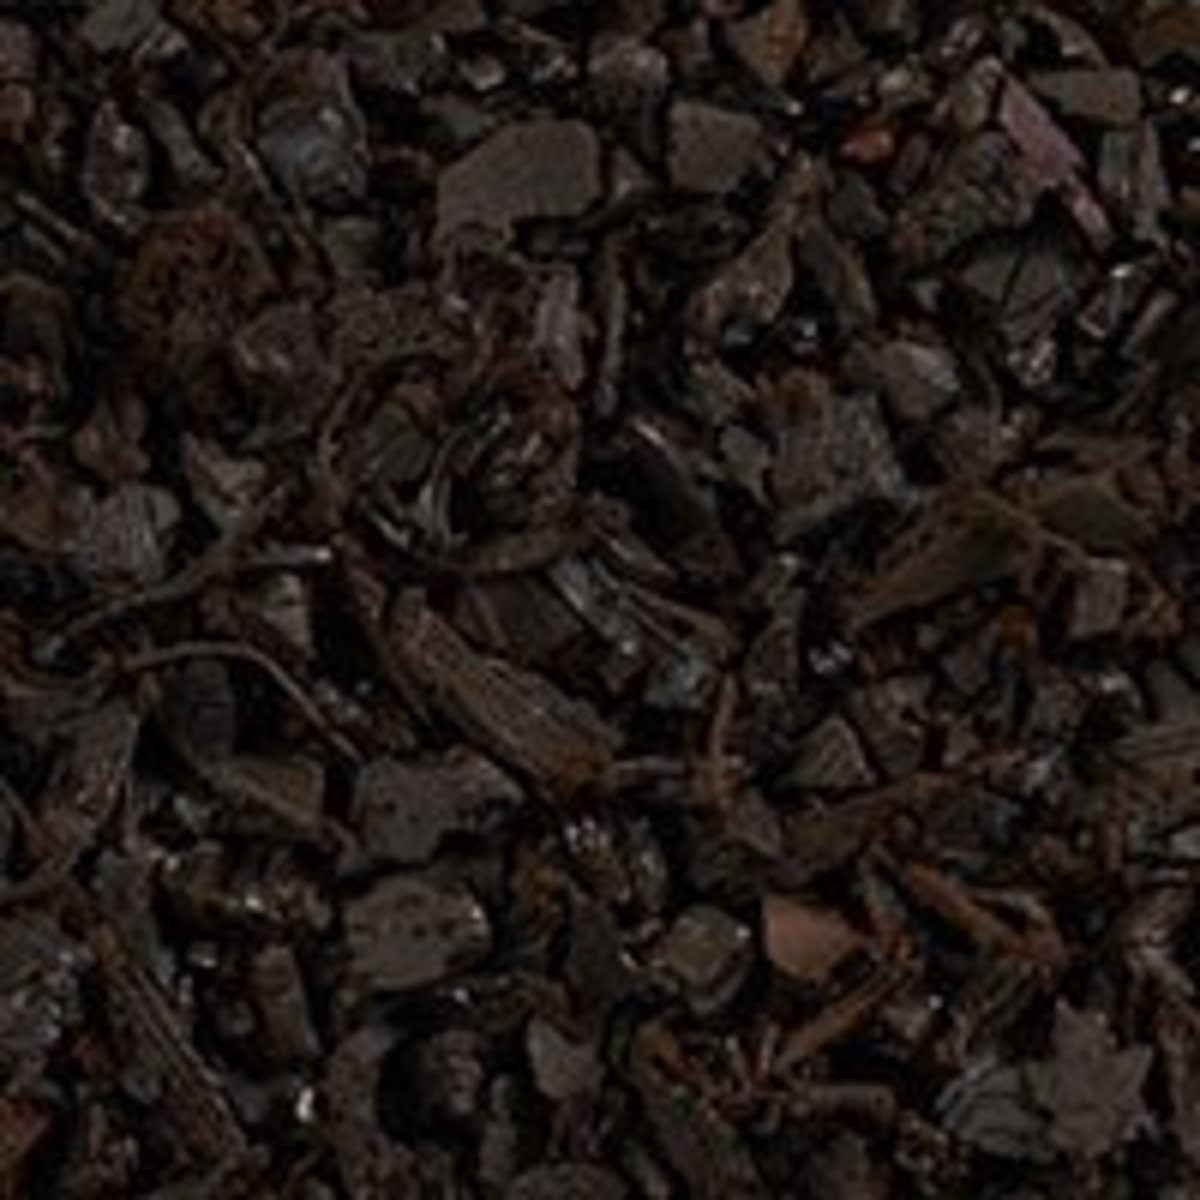 Rubber mulch and bark